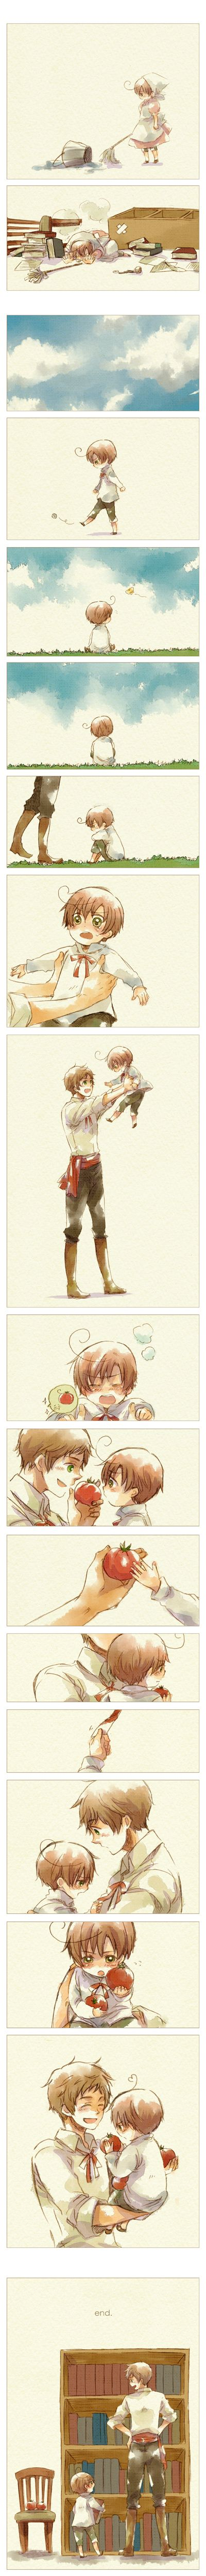 Cute fancomic featuring Romano and Spain (little Lovino and Antonio) - Art by Nori (peco) Hetalia :)